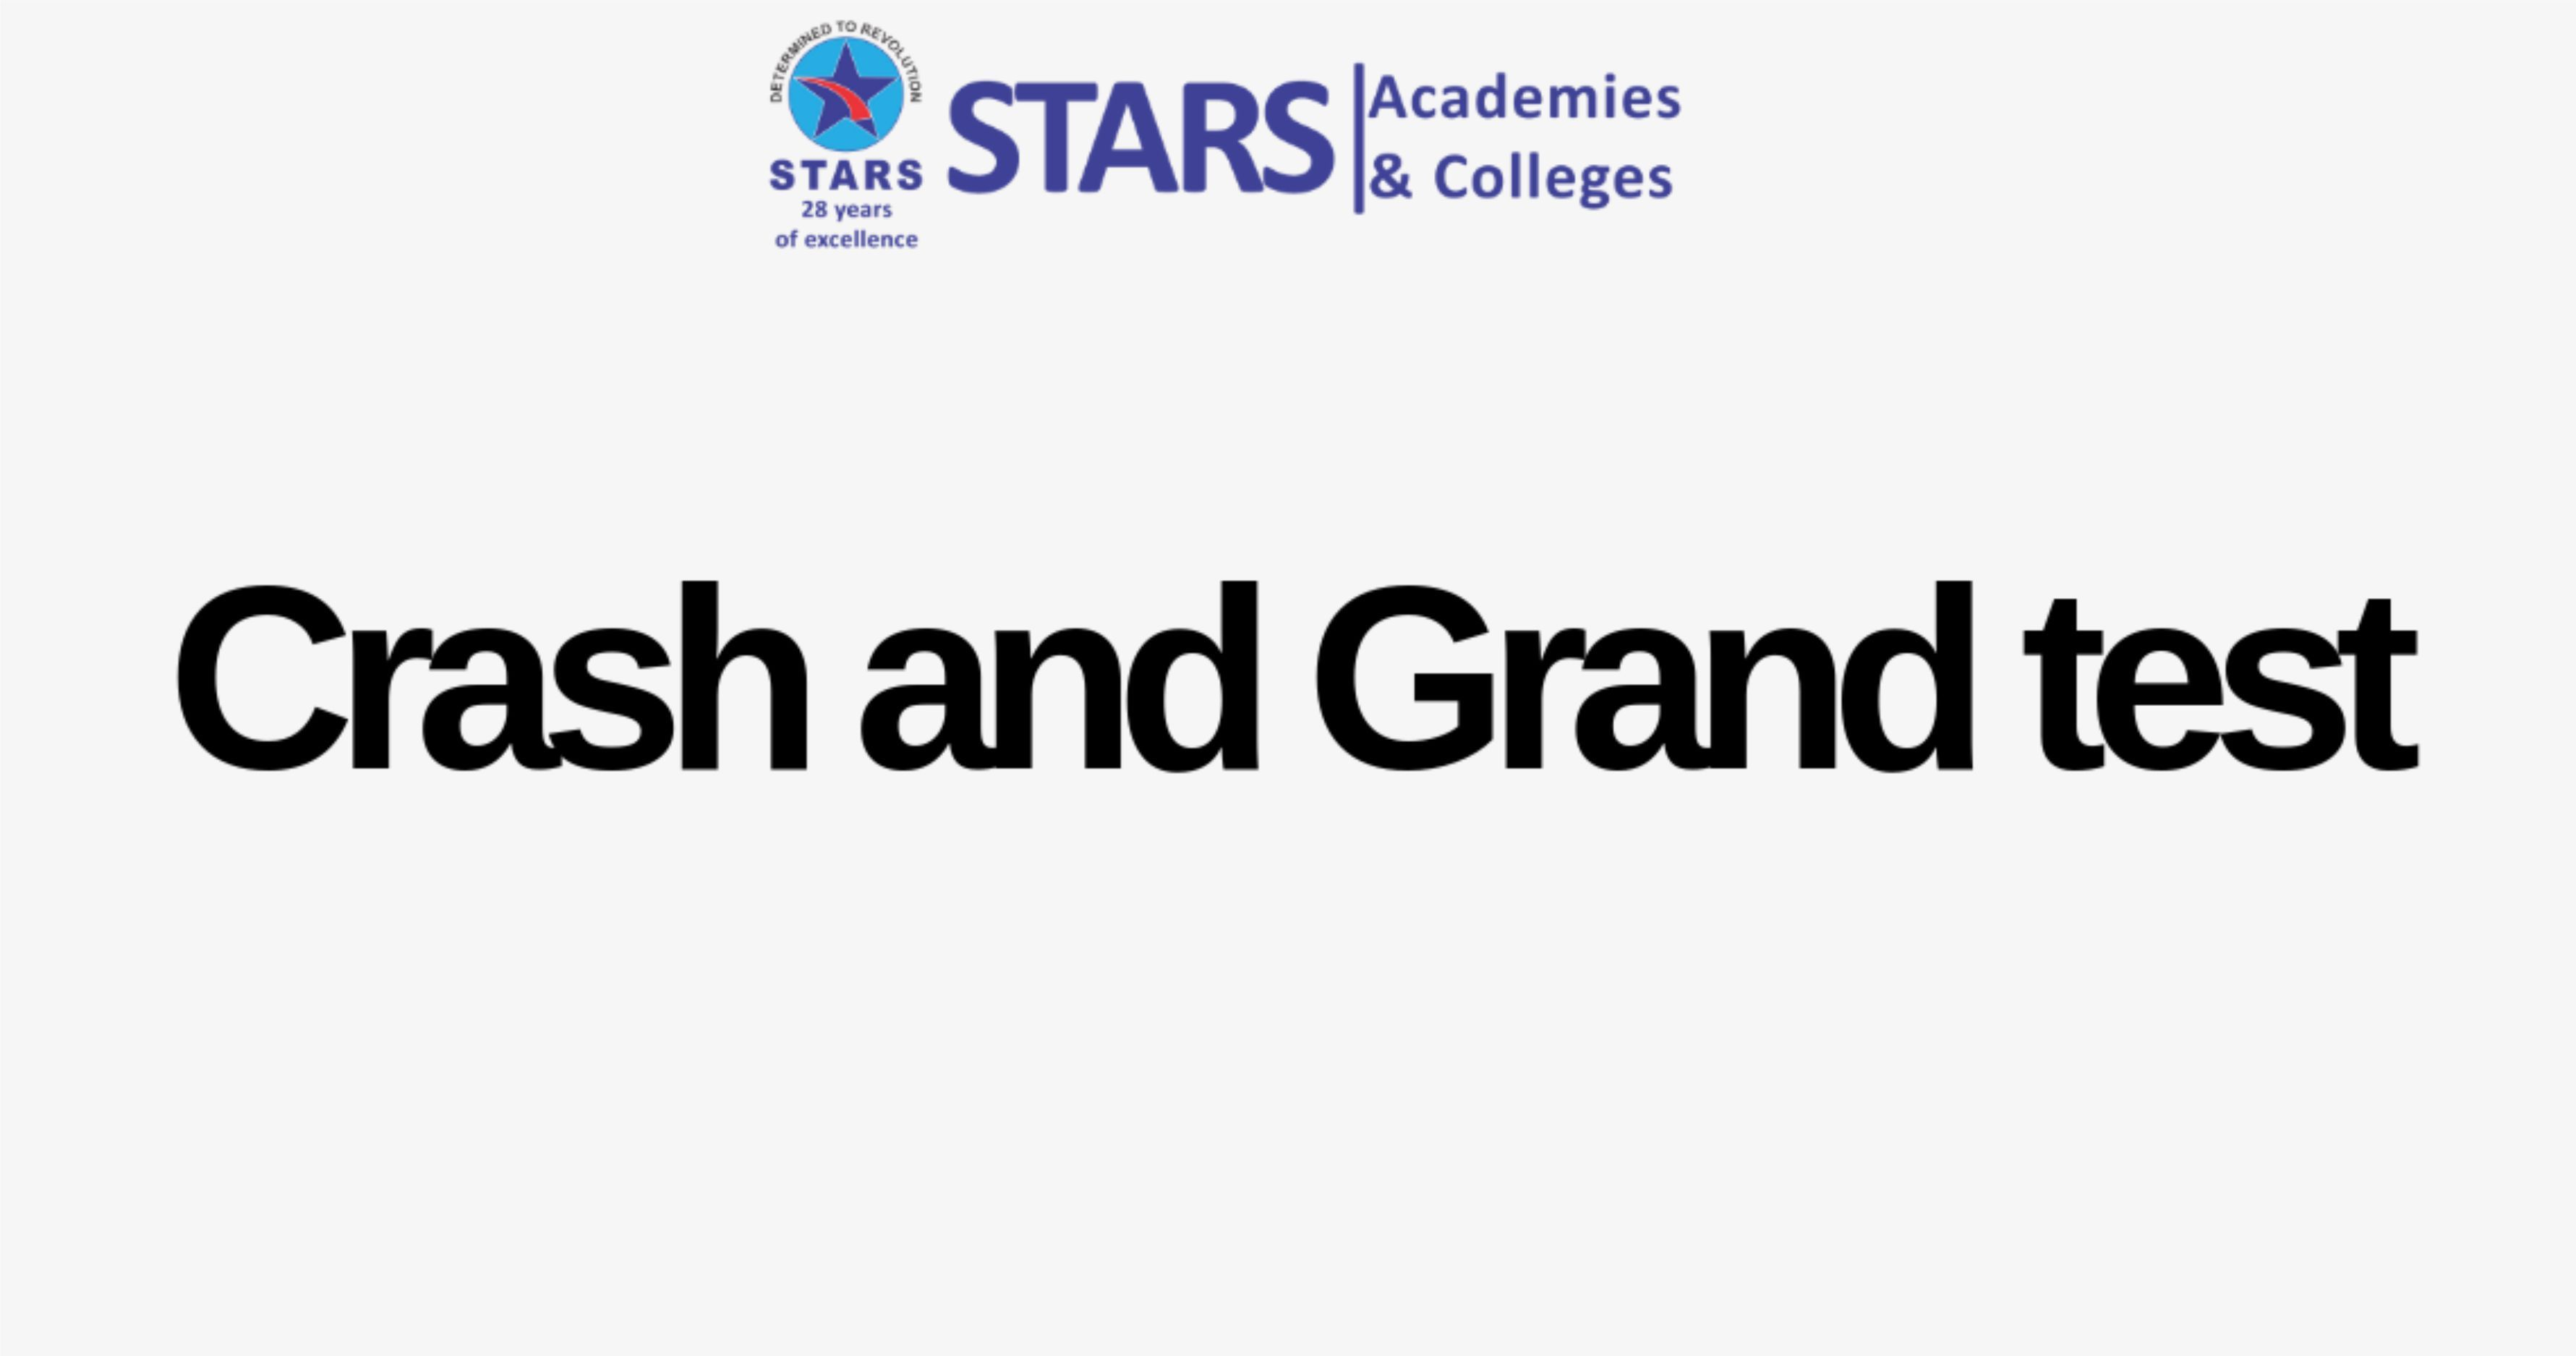 Stars Academy Crash and Grand Test Session Information